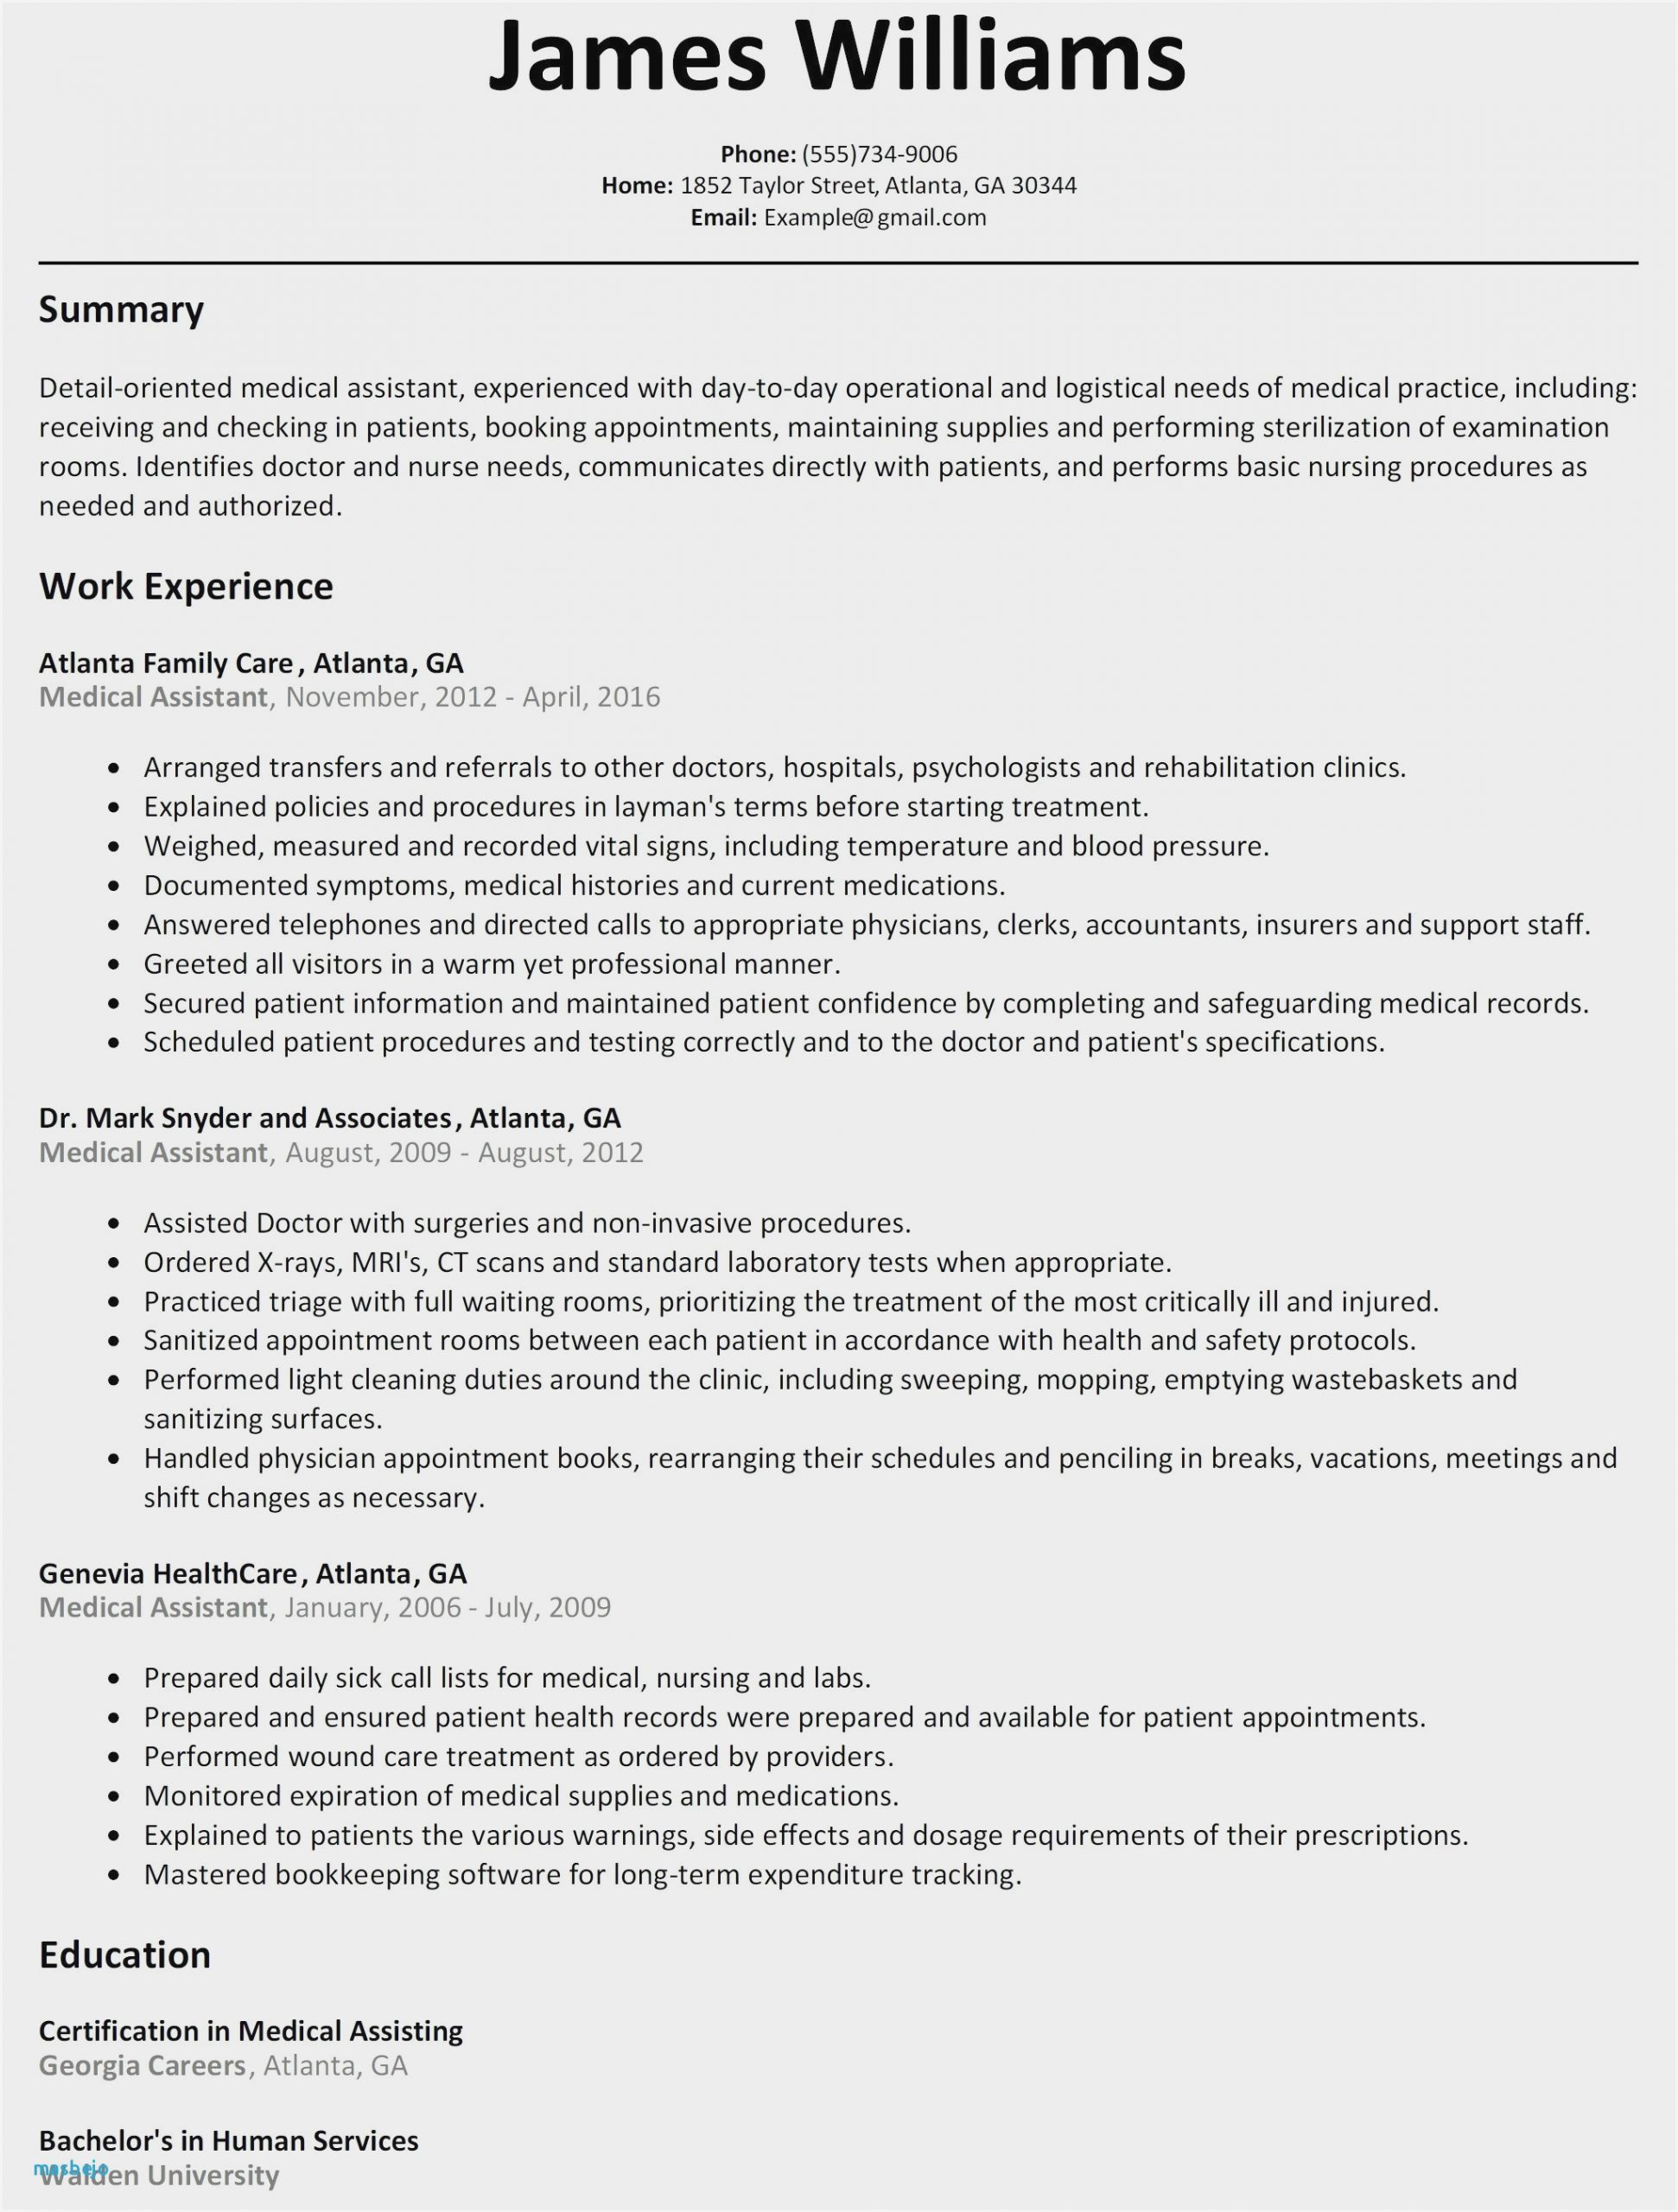 resume objective statement examples nursing sample customer service for example scaled Resume Customer Service Objective Statement For Resume Example